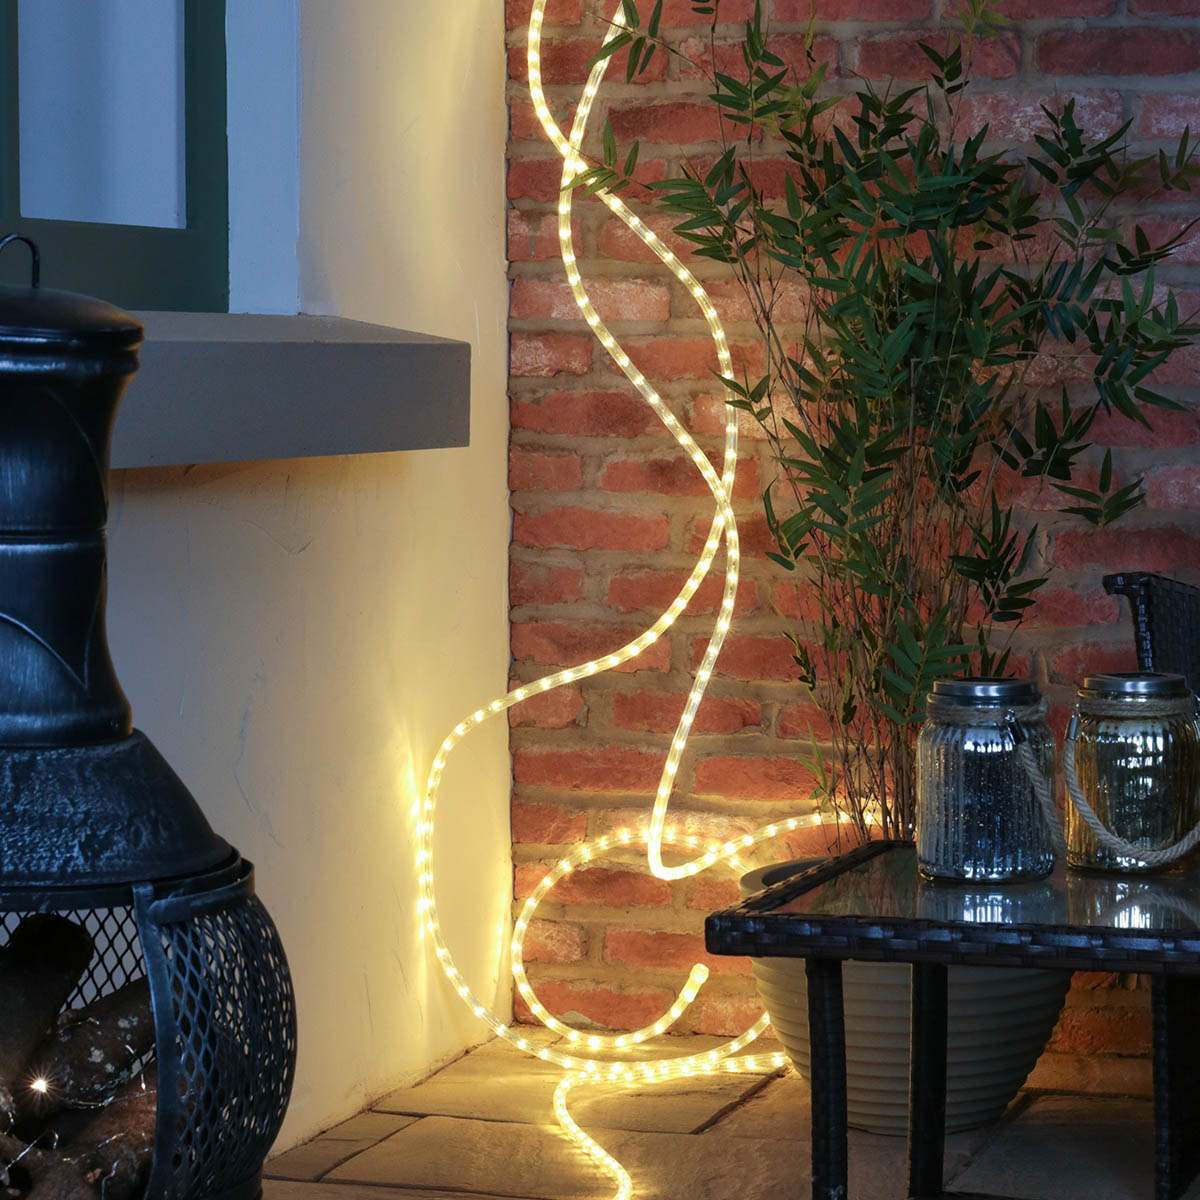 Led Lights Outside Use: Outdoor LED Rope Light